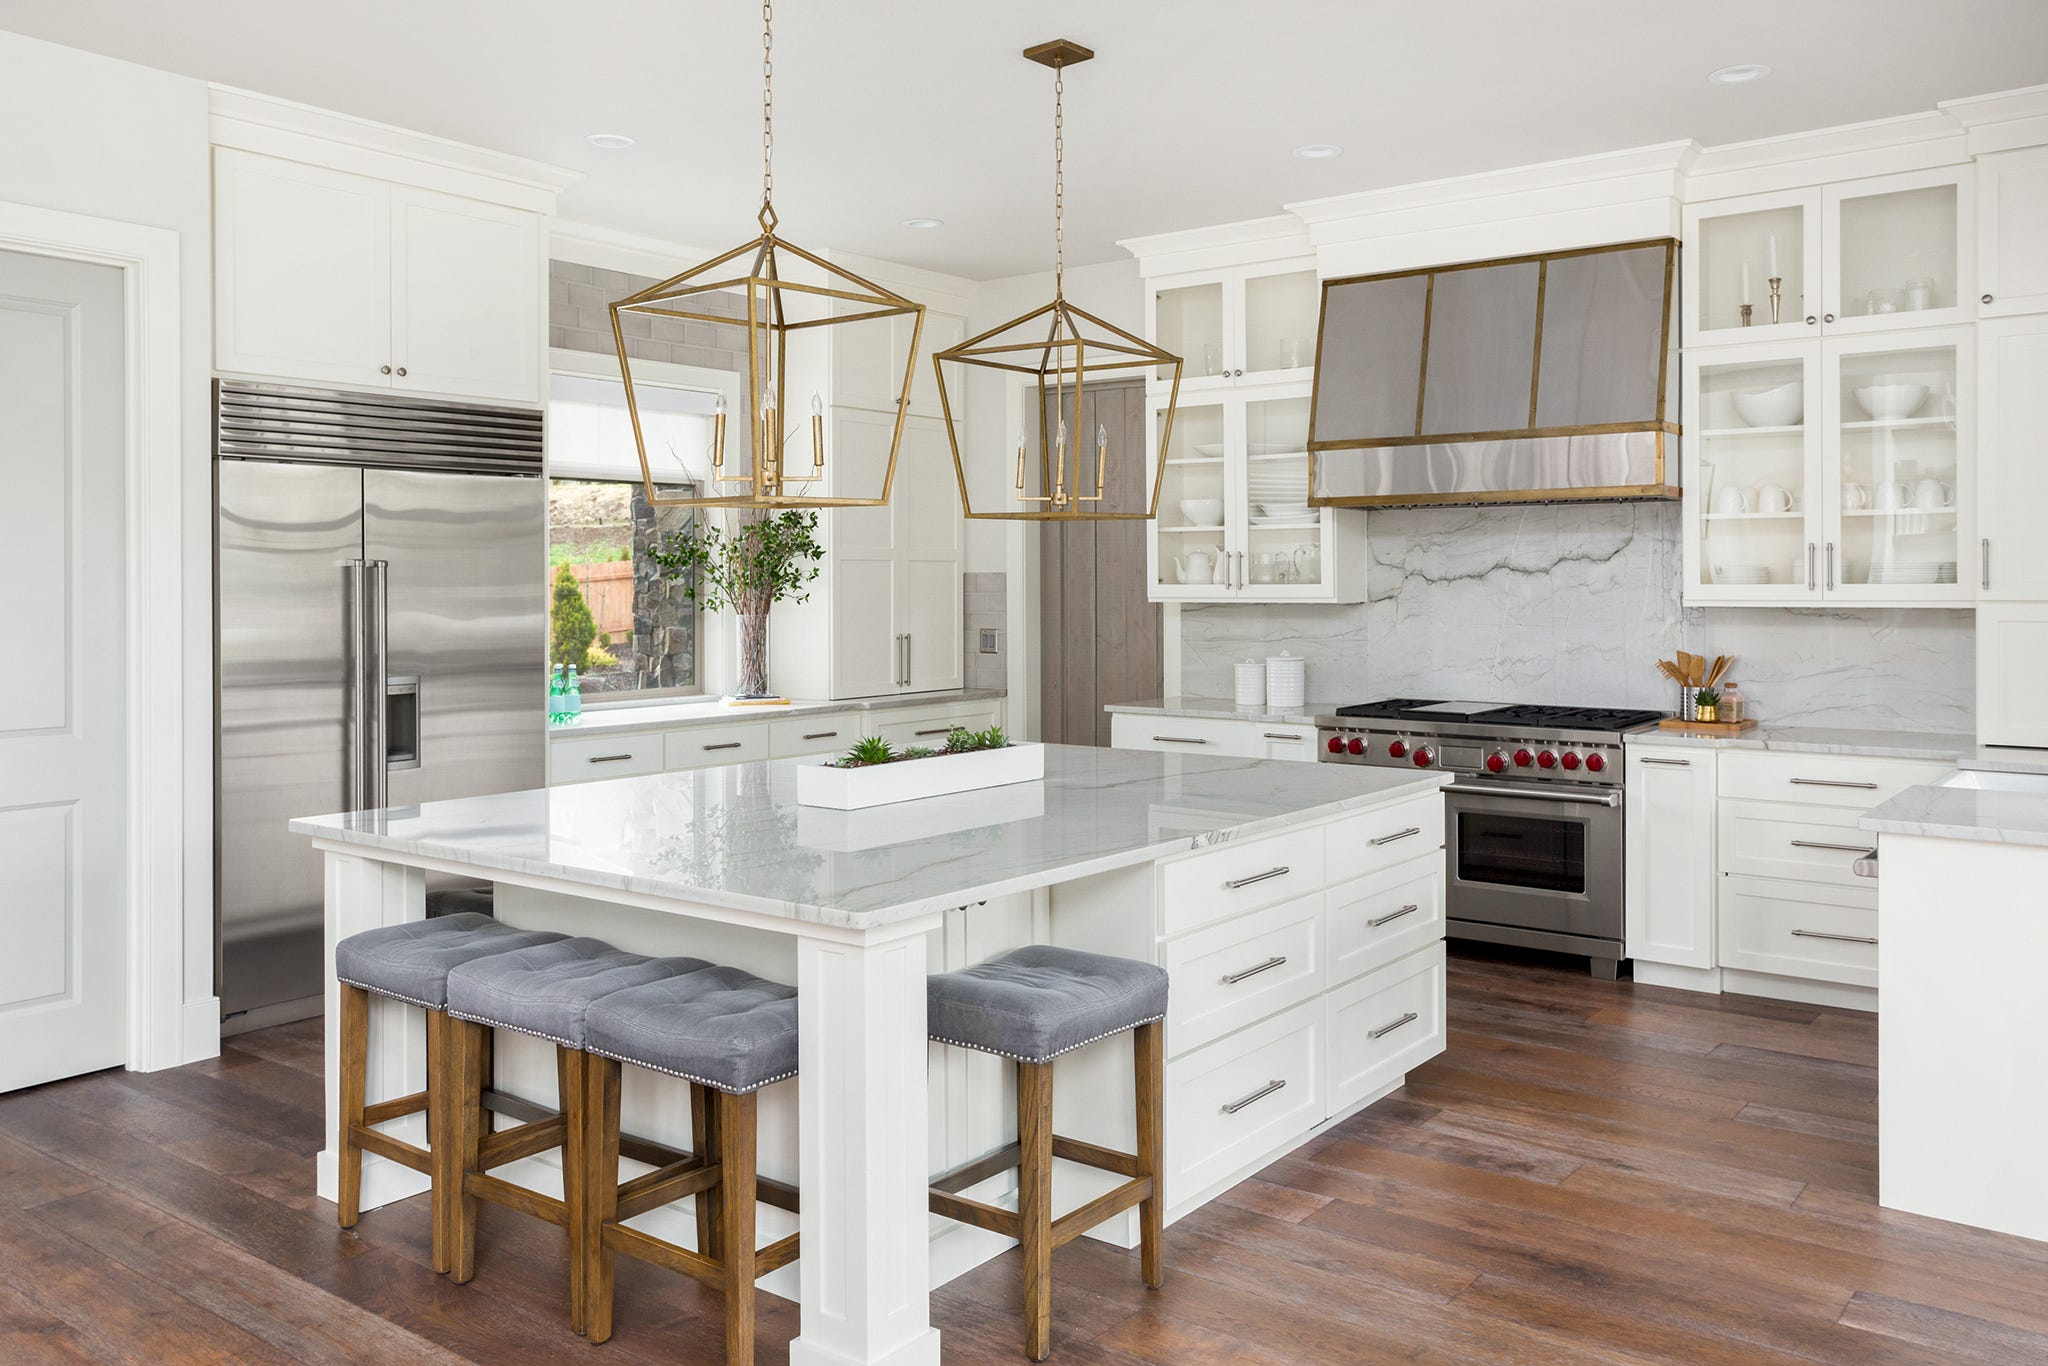 Timeless Kitchen Trends That Will Last for Years to Come